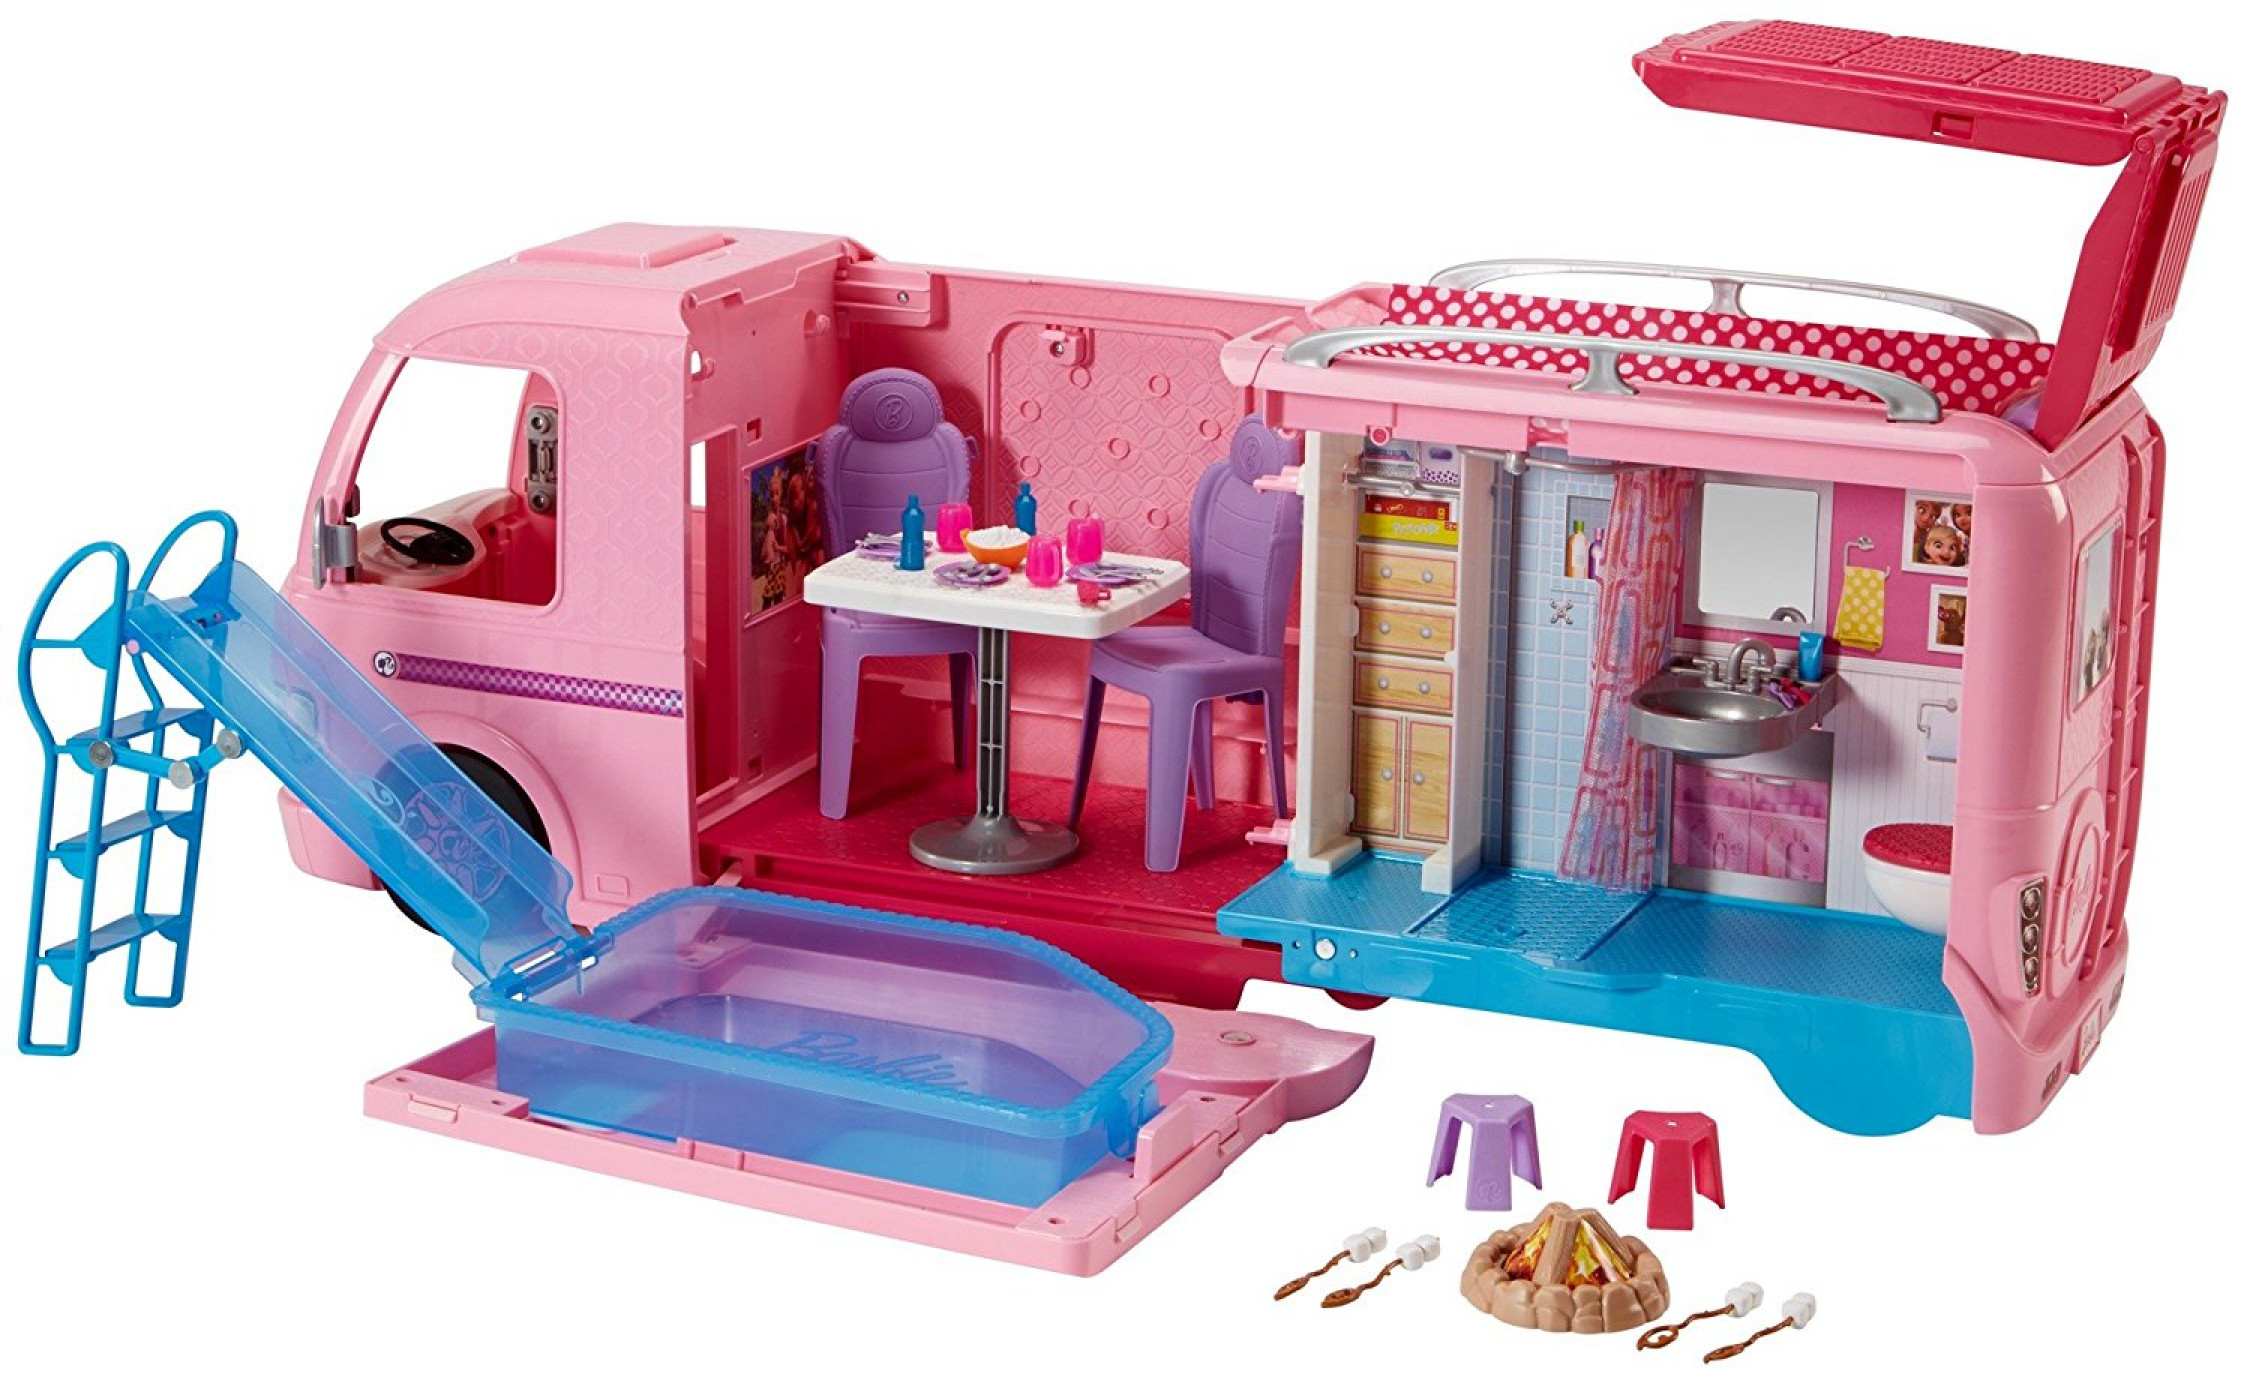 Bus Toys For Girls : Barbie camper van bus campsite playset doll girl camping